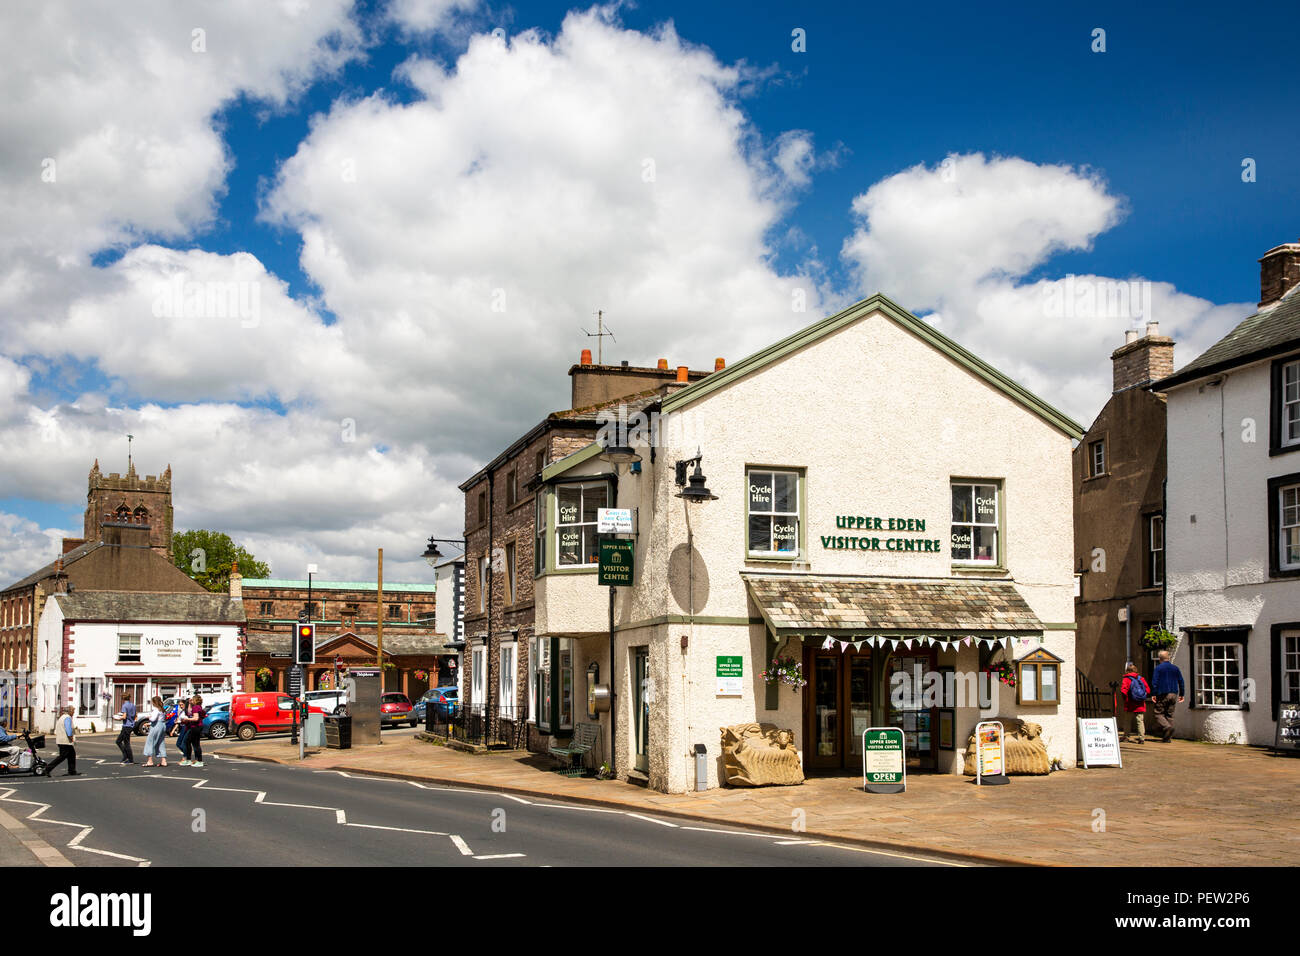 UK, Cumbria, Eden Valley, Kirkby Stephen, Market Street, Upper Eden Visitor Centre Stock Photo